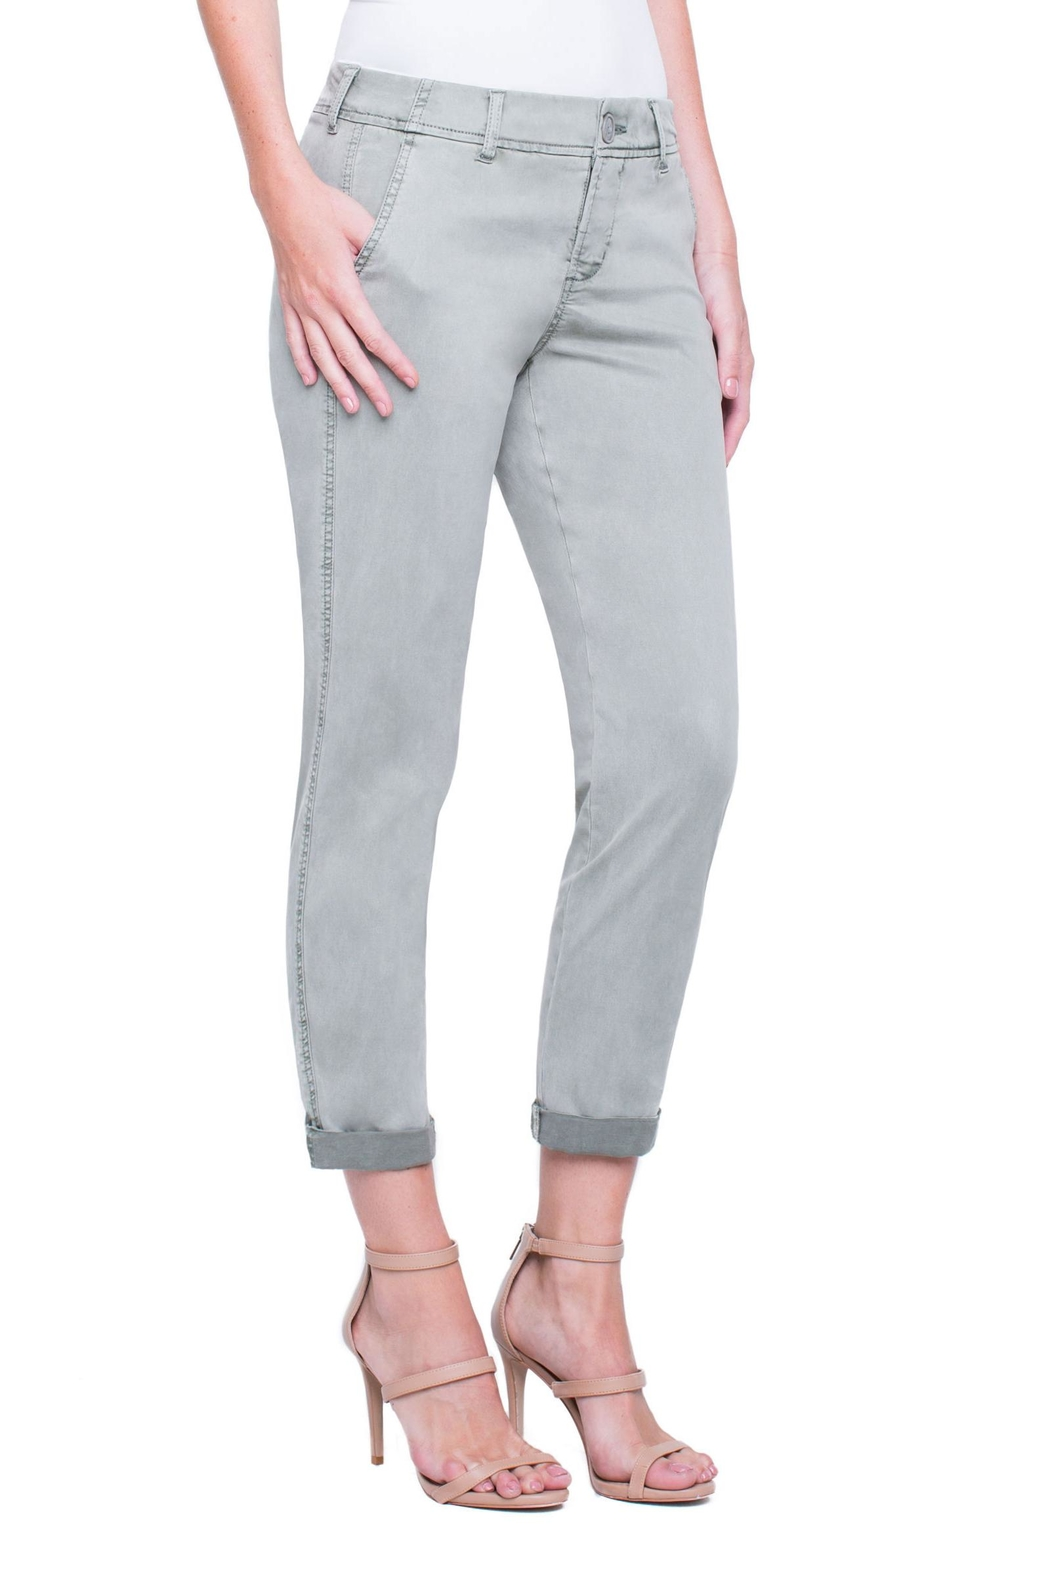 Liverpool Jeans Company Buddy Trouser - Main Image